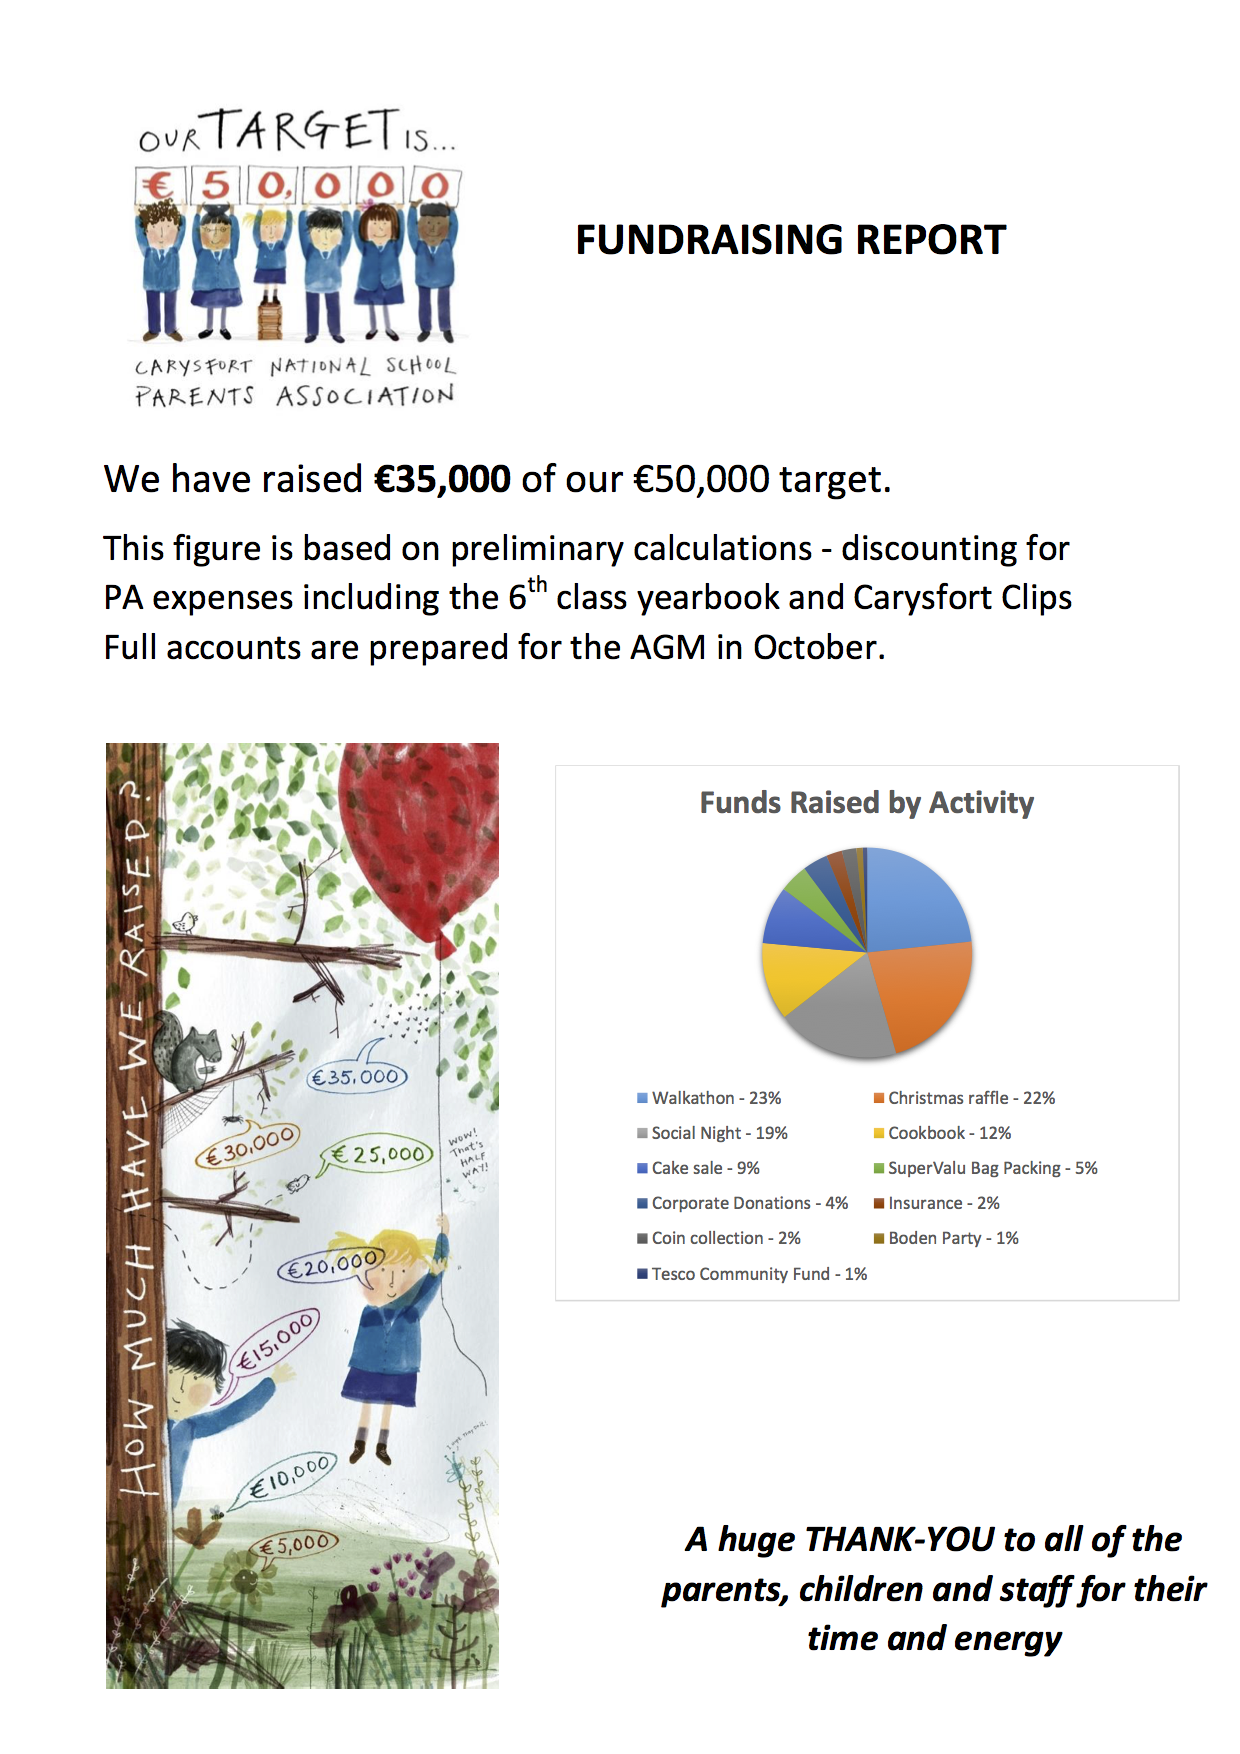 Carysfort National School Fundraising Report 2015/16